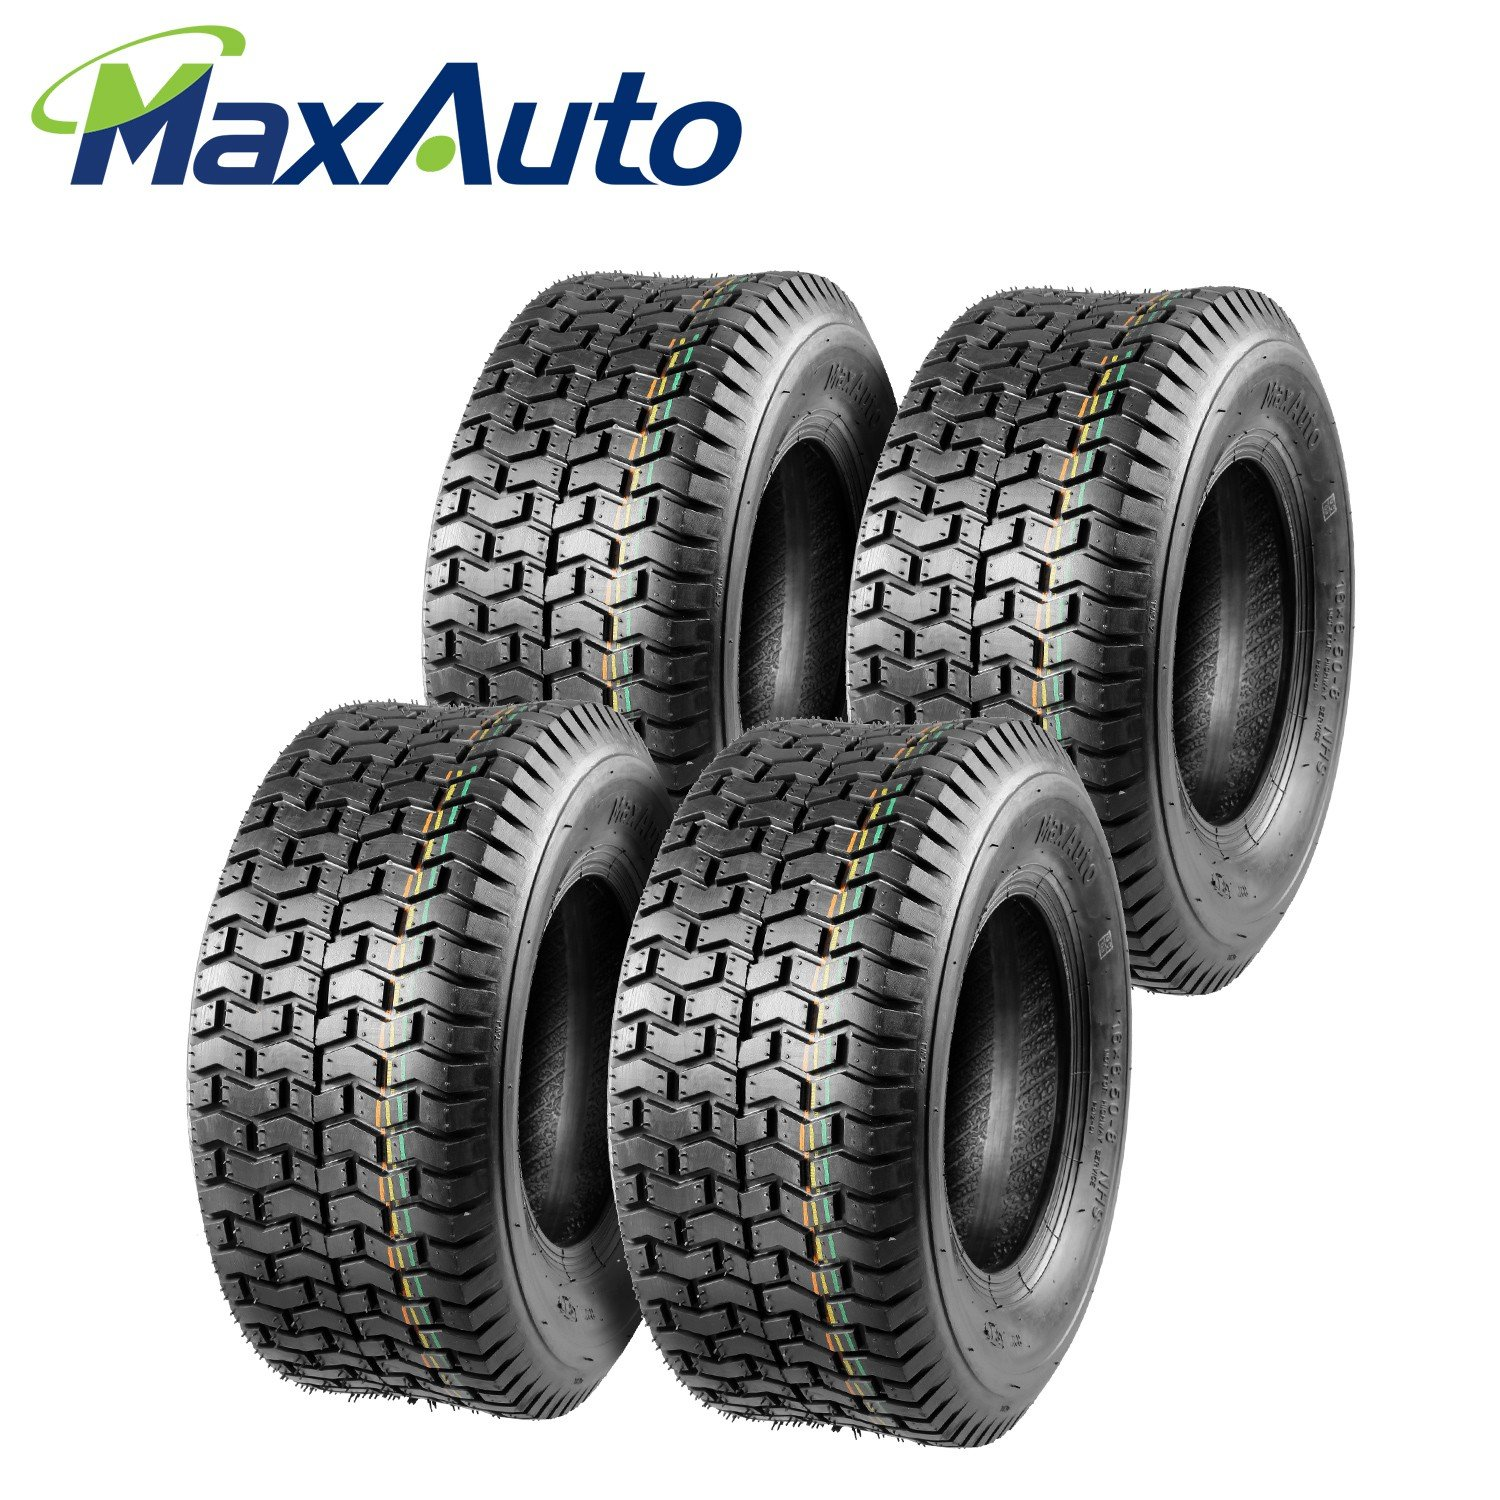 MaxAuto Turf Tires - 16x6.50-8 16/6.50-8 4Ply Tubeless for Garden Tractor Lawn mower(Set of 4)